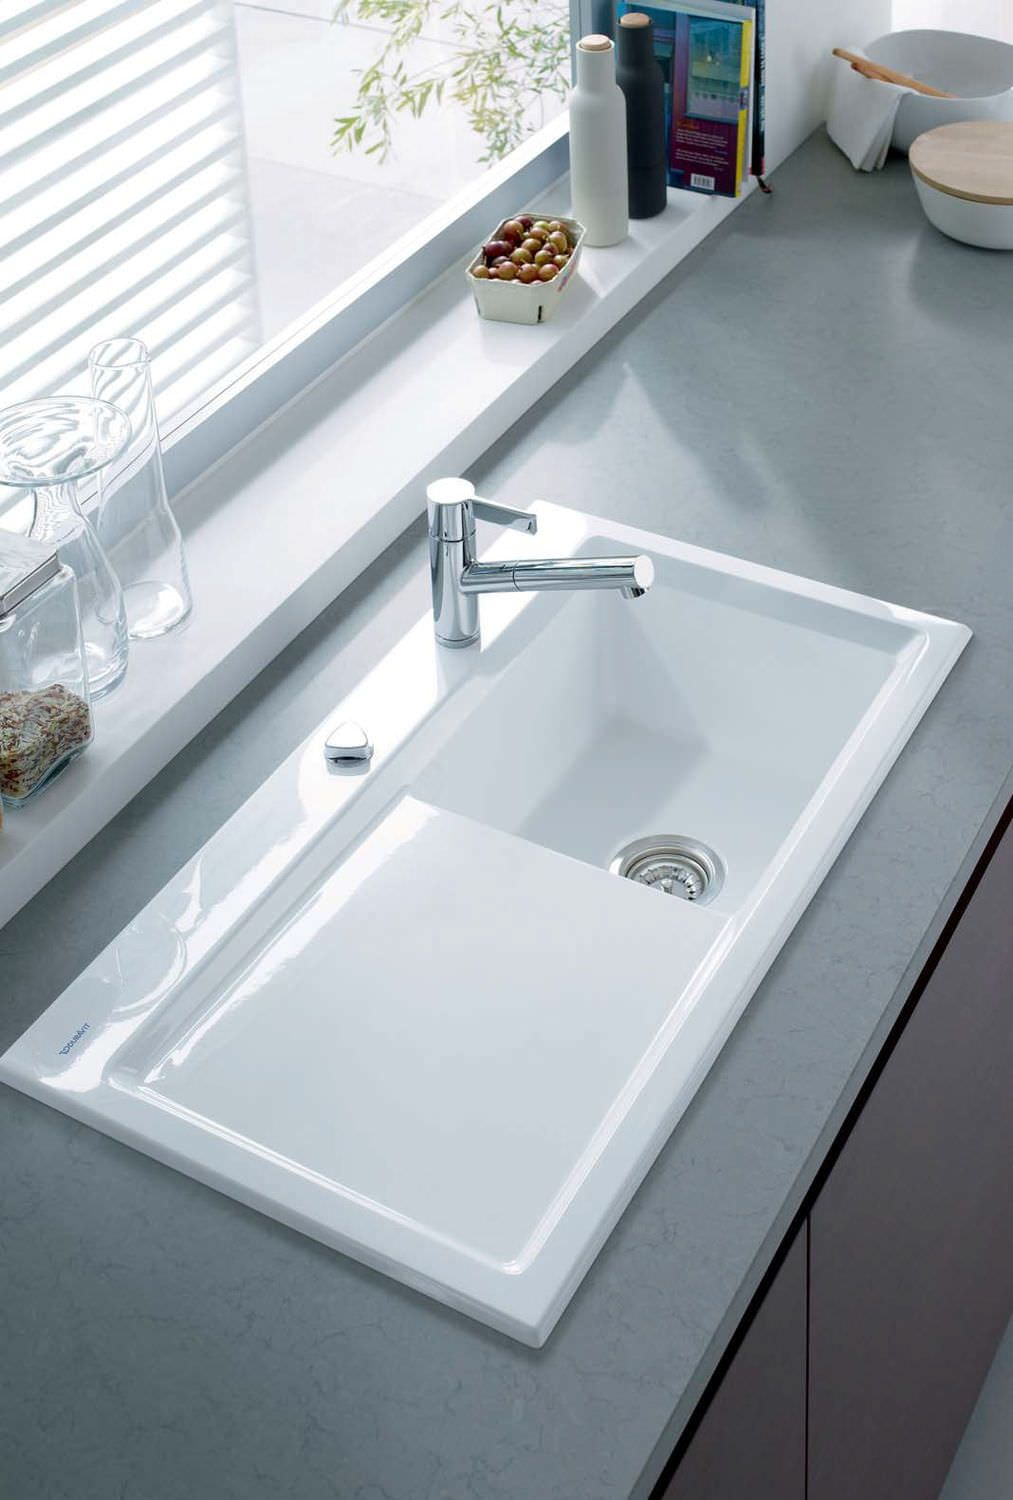 Kitchen Sink Ceramic With Drainboard By Sieger Design Duravit